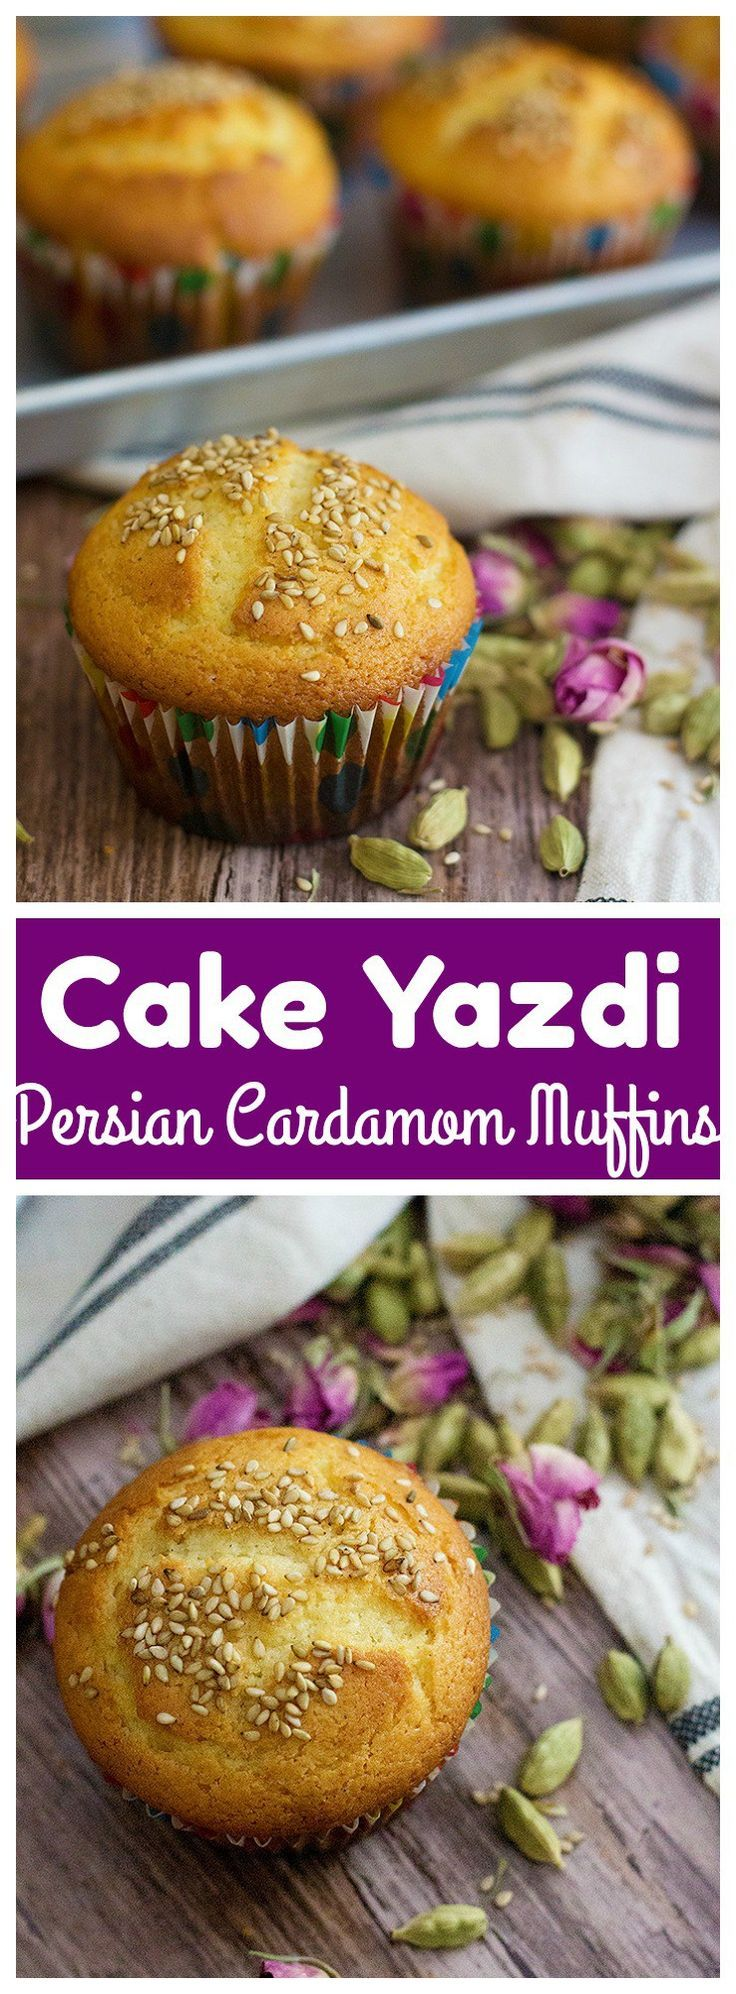 Persian Cardamom Muffins – Cake Yazdi is a traditional Iranian/Persian recipe for delicious muffins that are filled with Persian flavors. The combination of rose water and cardamom is always great.